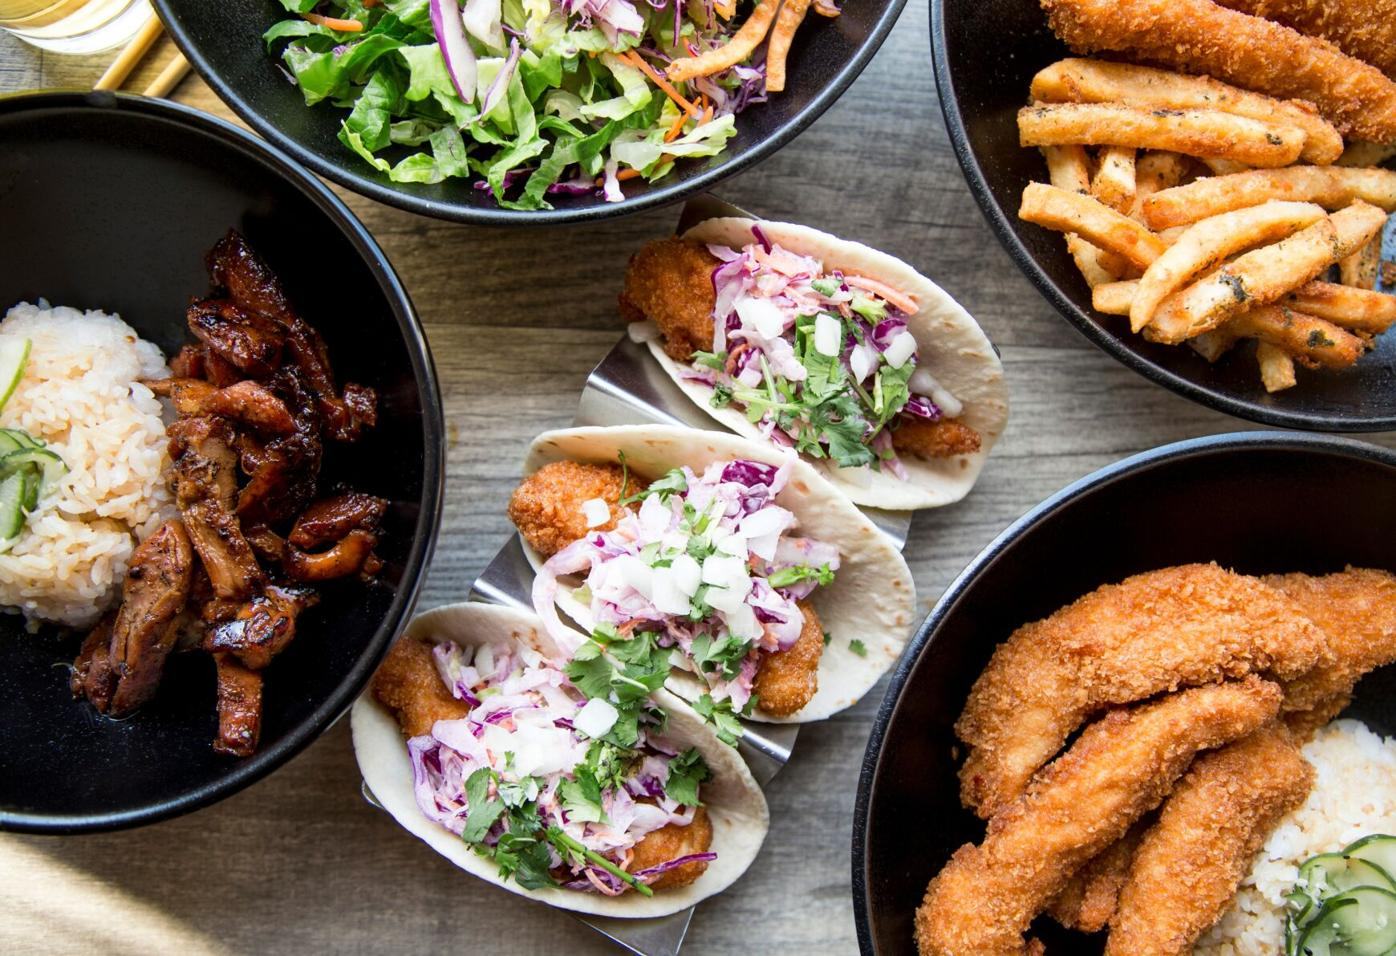 Tacos Grilled Fries and Fried_PONKOCORPORATE8.jpg